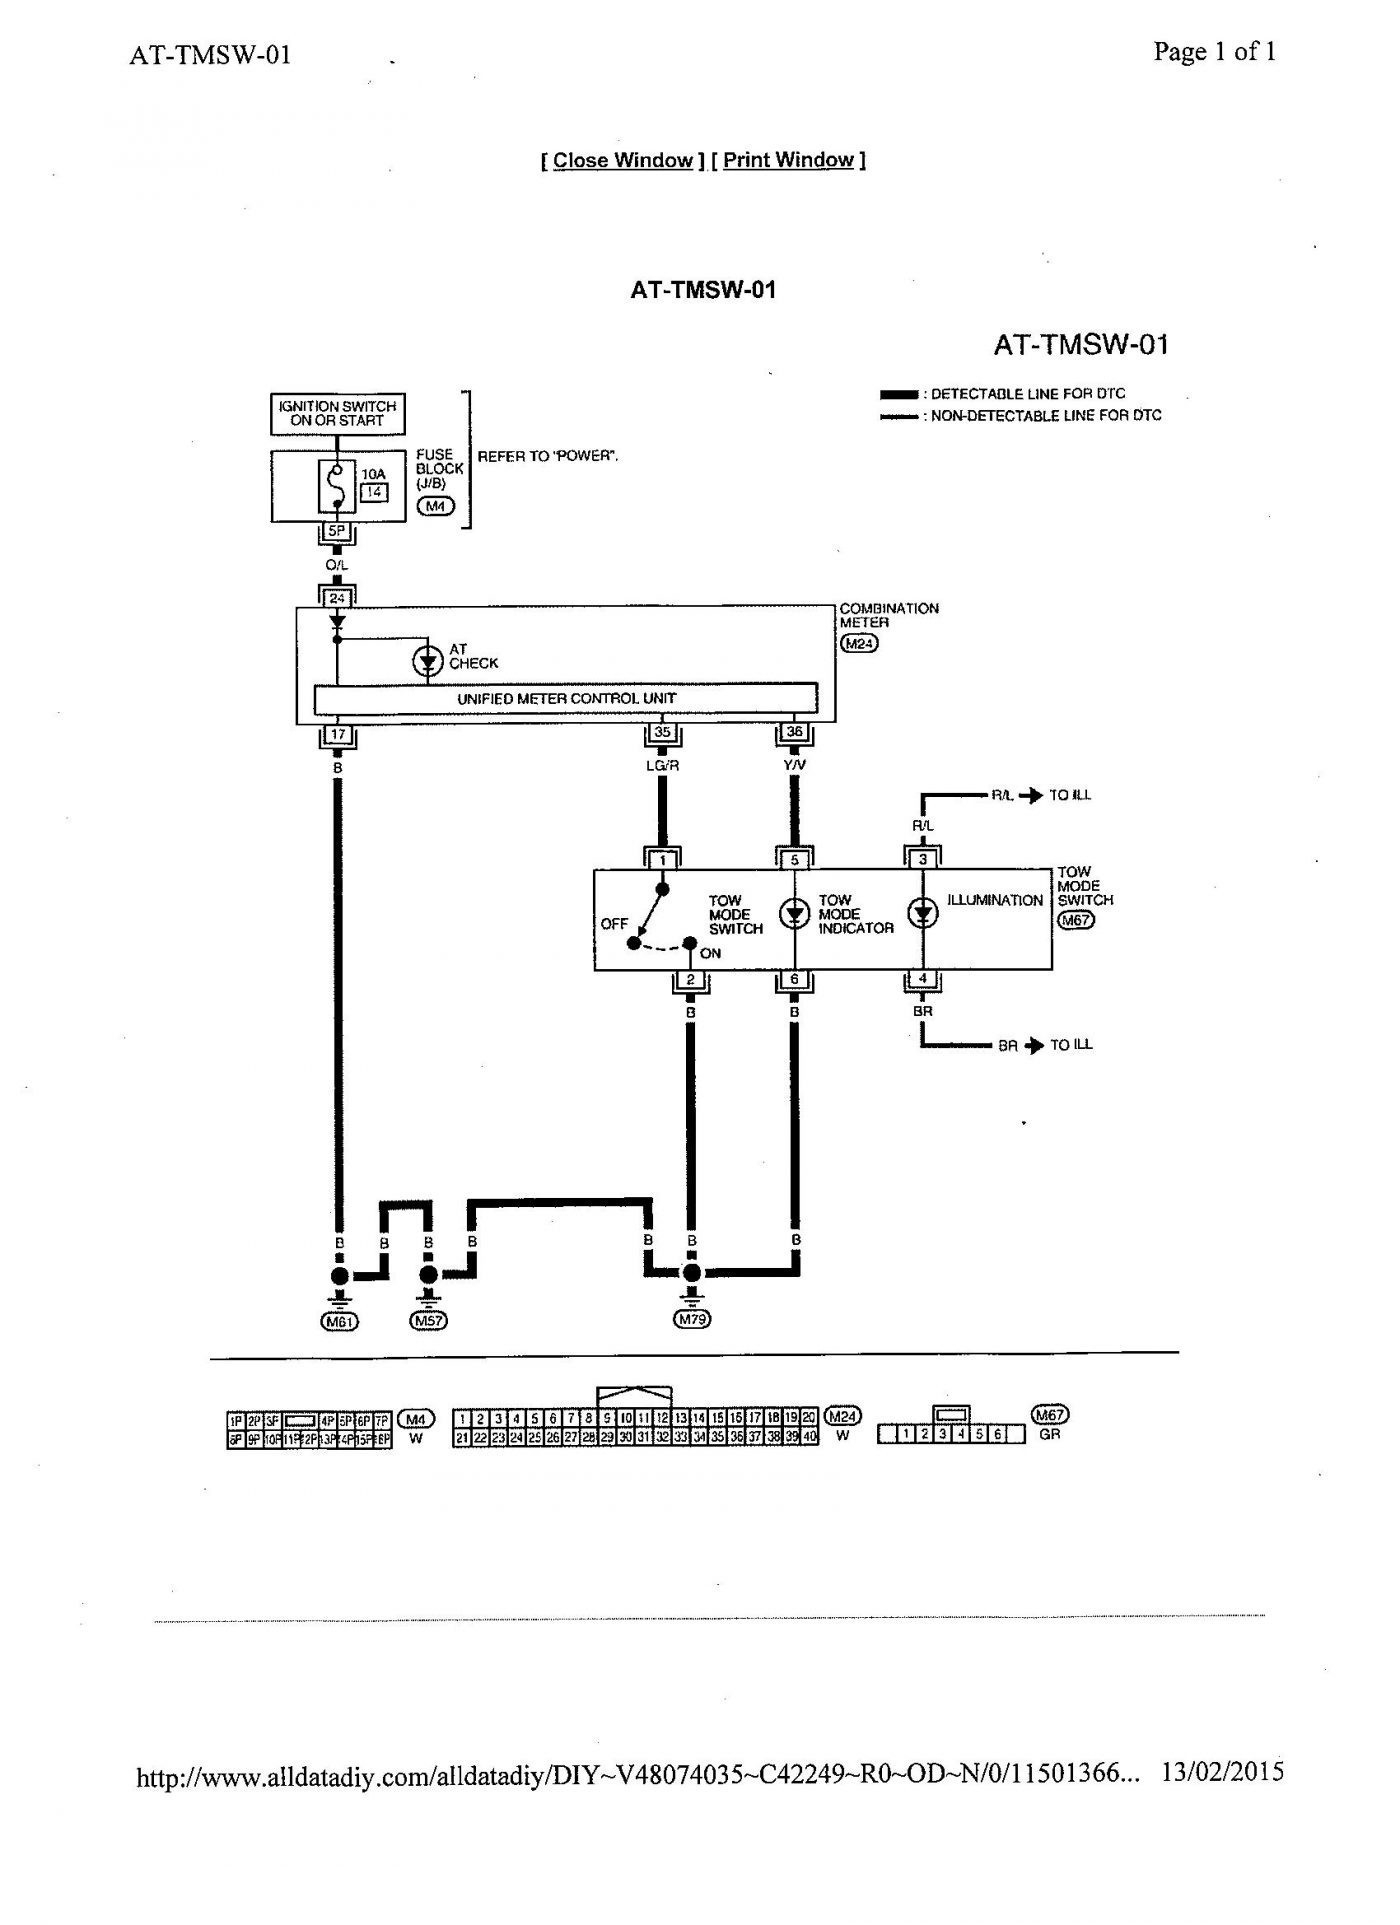 electric tarp motor wiring diagram Collection-Donovan Tarp Motor Wiring Diagram Gallery 15-t